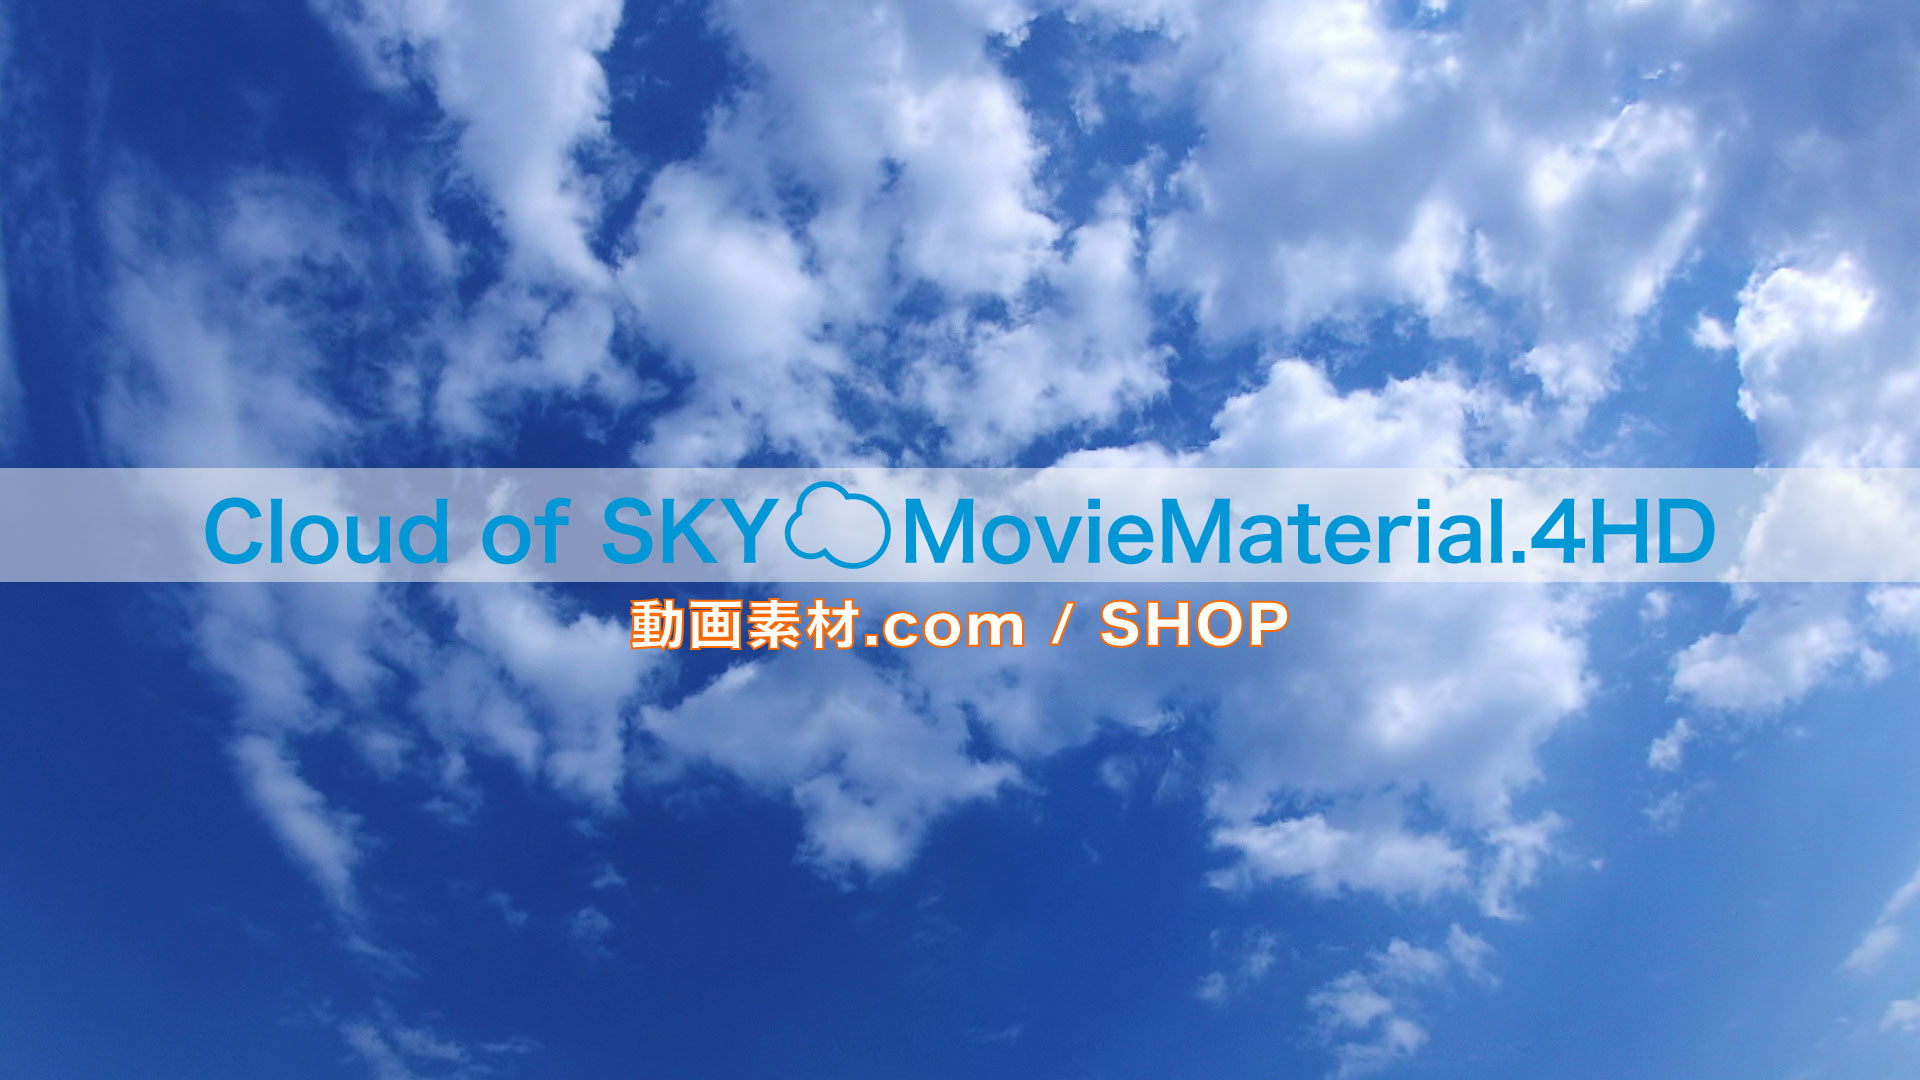 【Cloud of SKY MovieMaterial.4HD】ロイヤリティフリー フルハイビジョン空と雲の動画素材集 Image.4